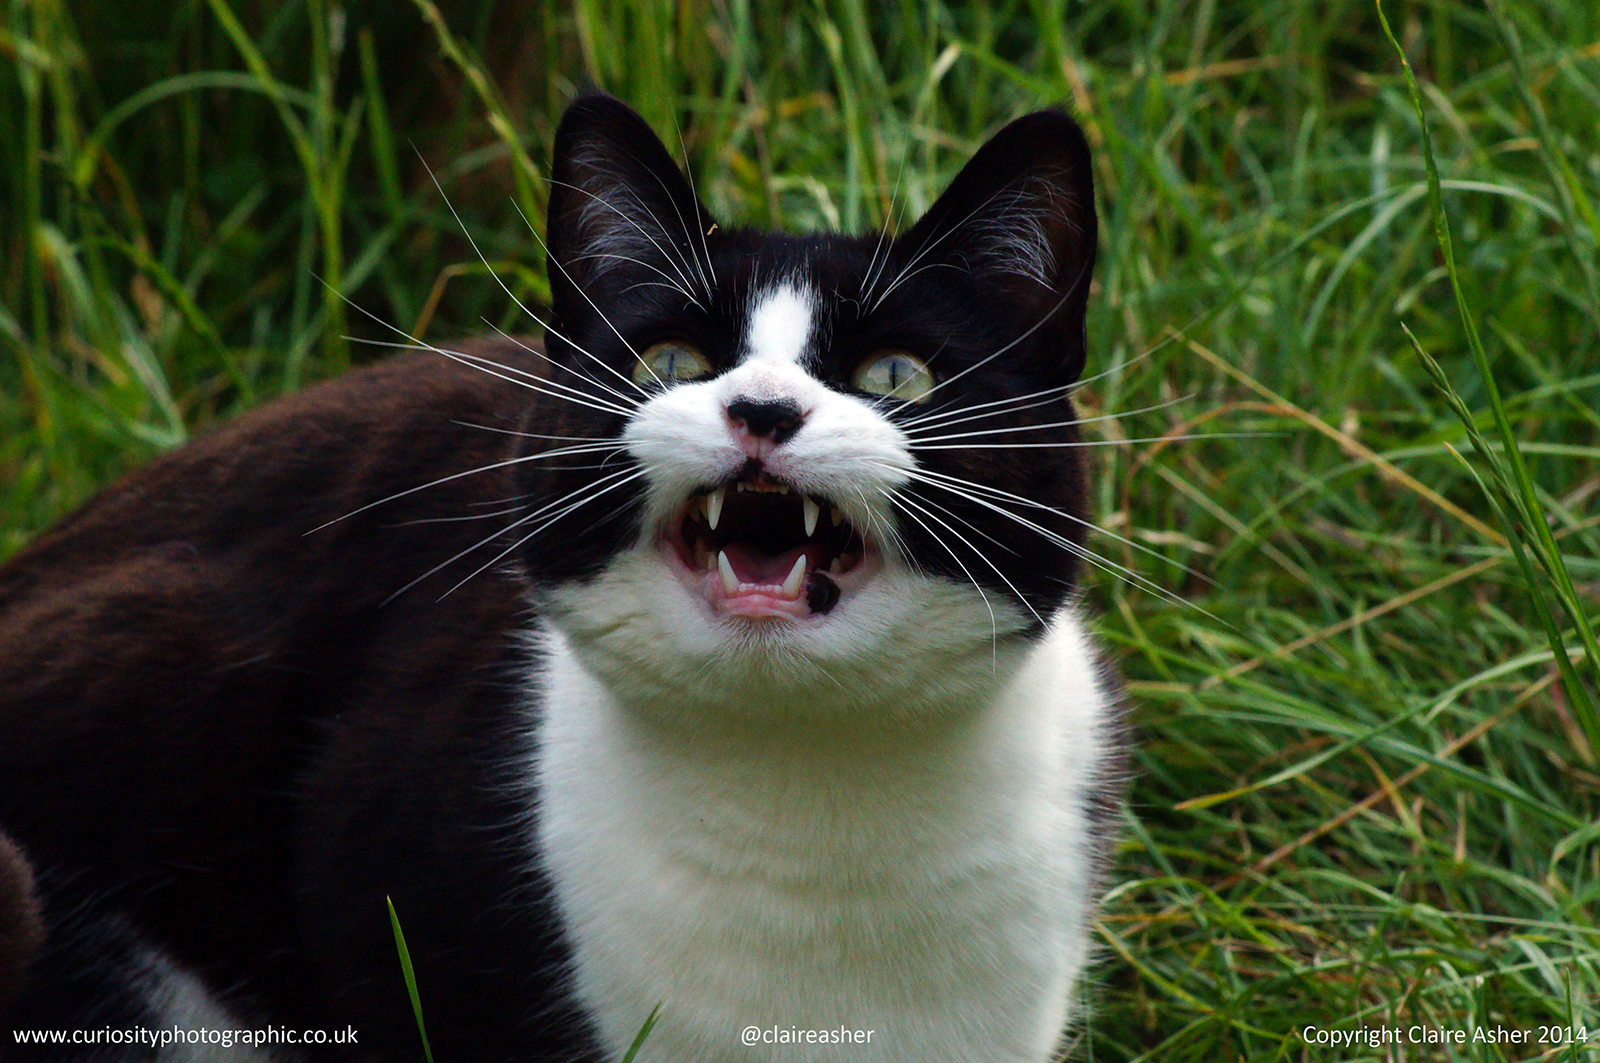 A domestic cat (Felis catus) photographed in Berkshire in 2014.